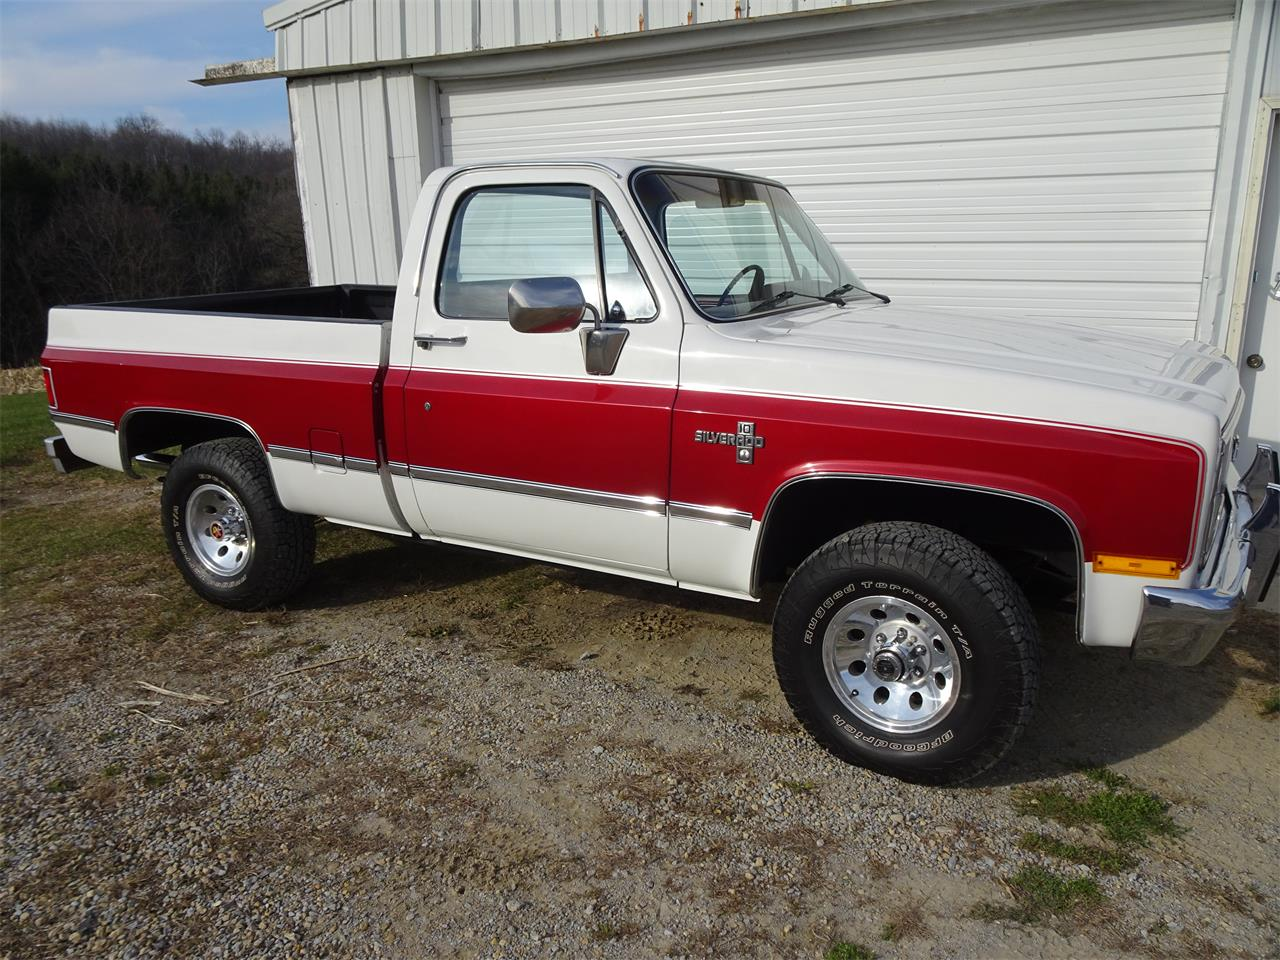 1984 Chevrolet K-10 (CC-1379401) for sale in Montfort, Wisconsin